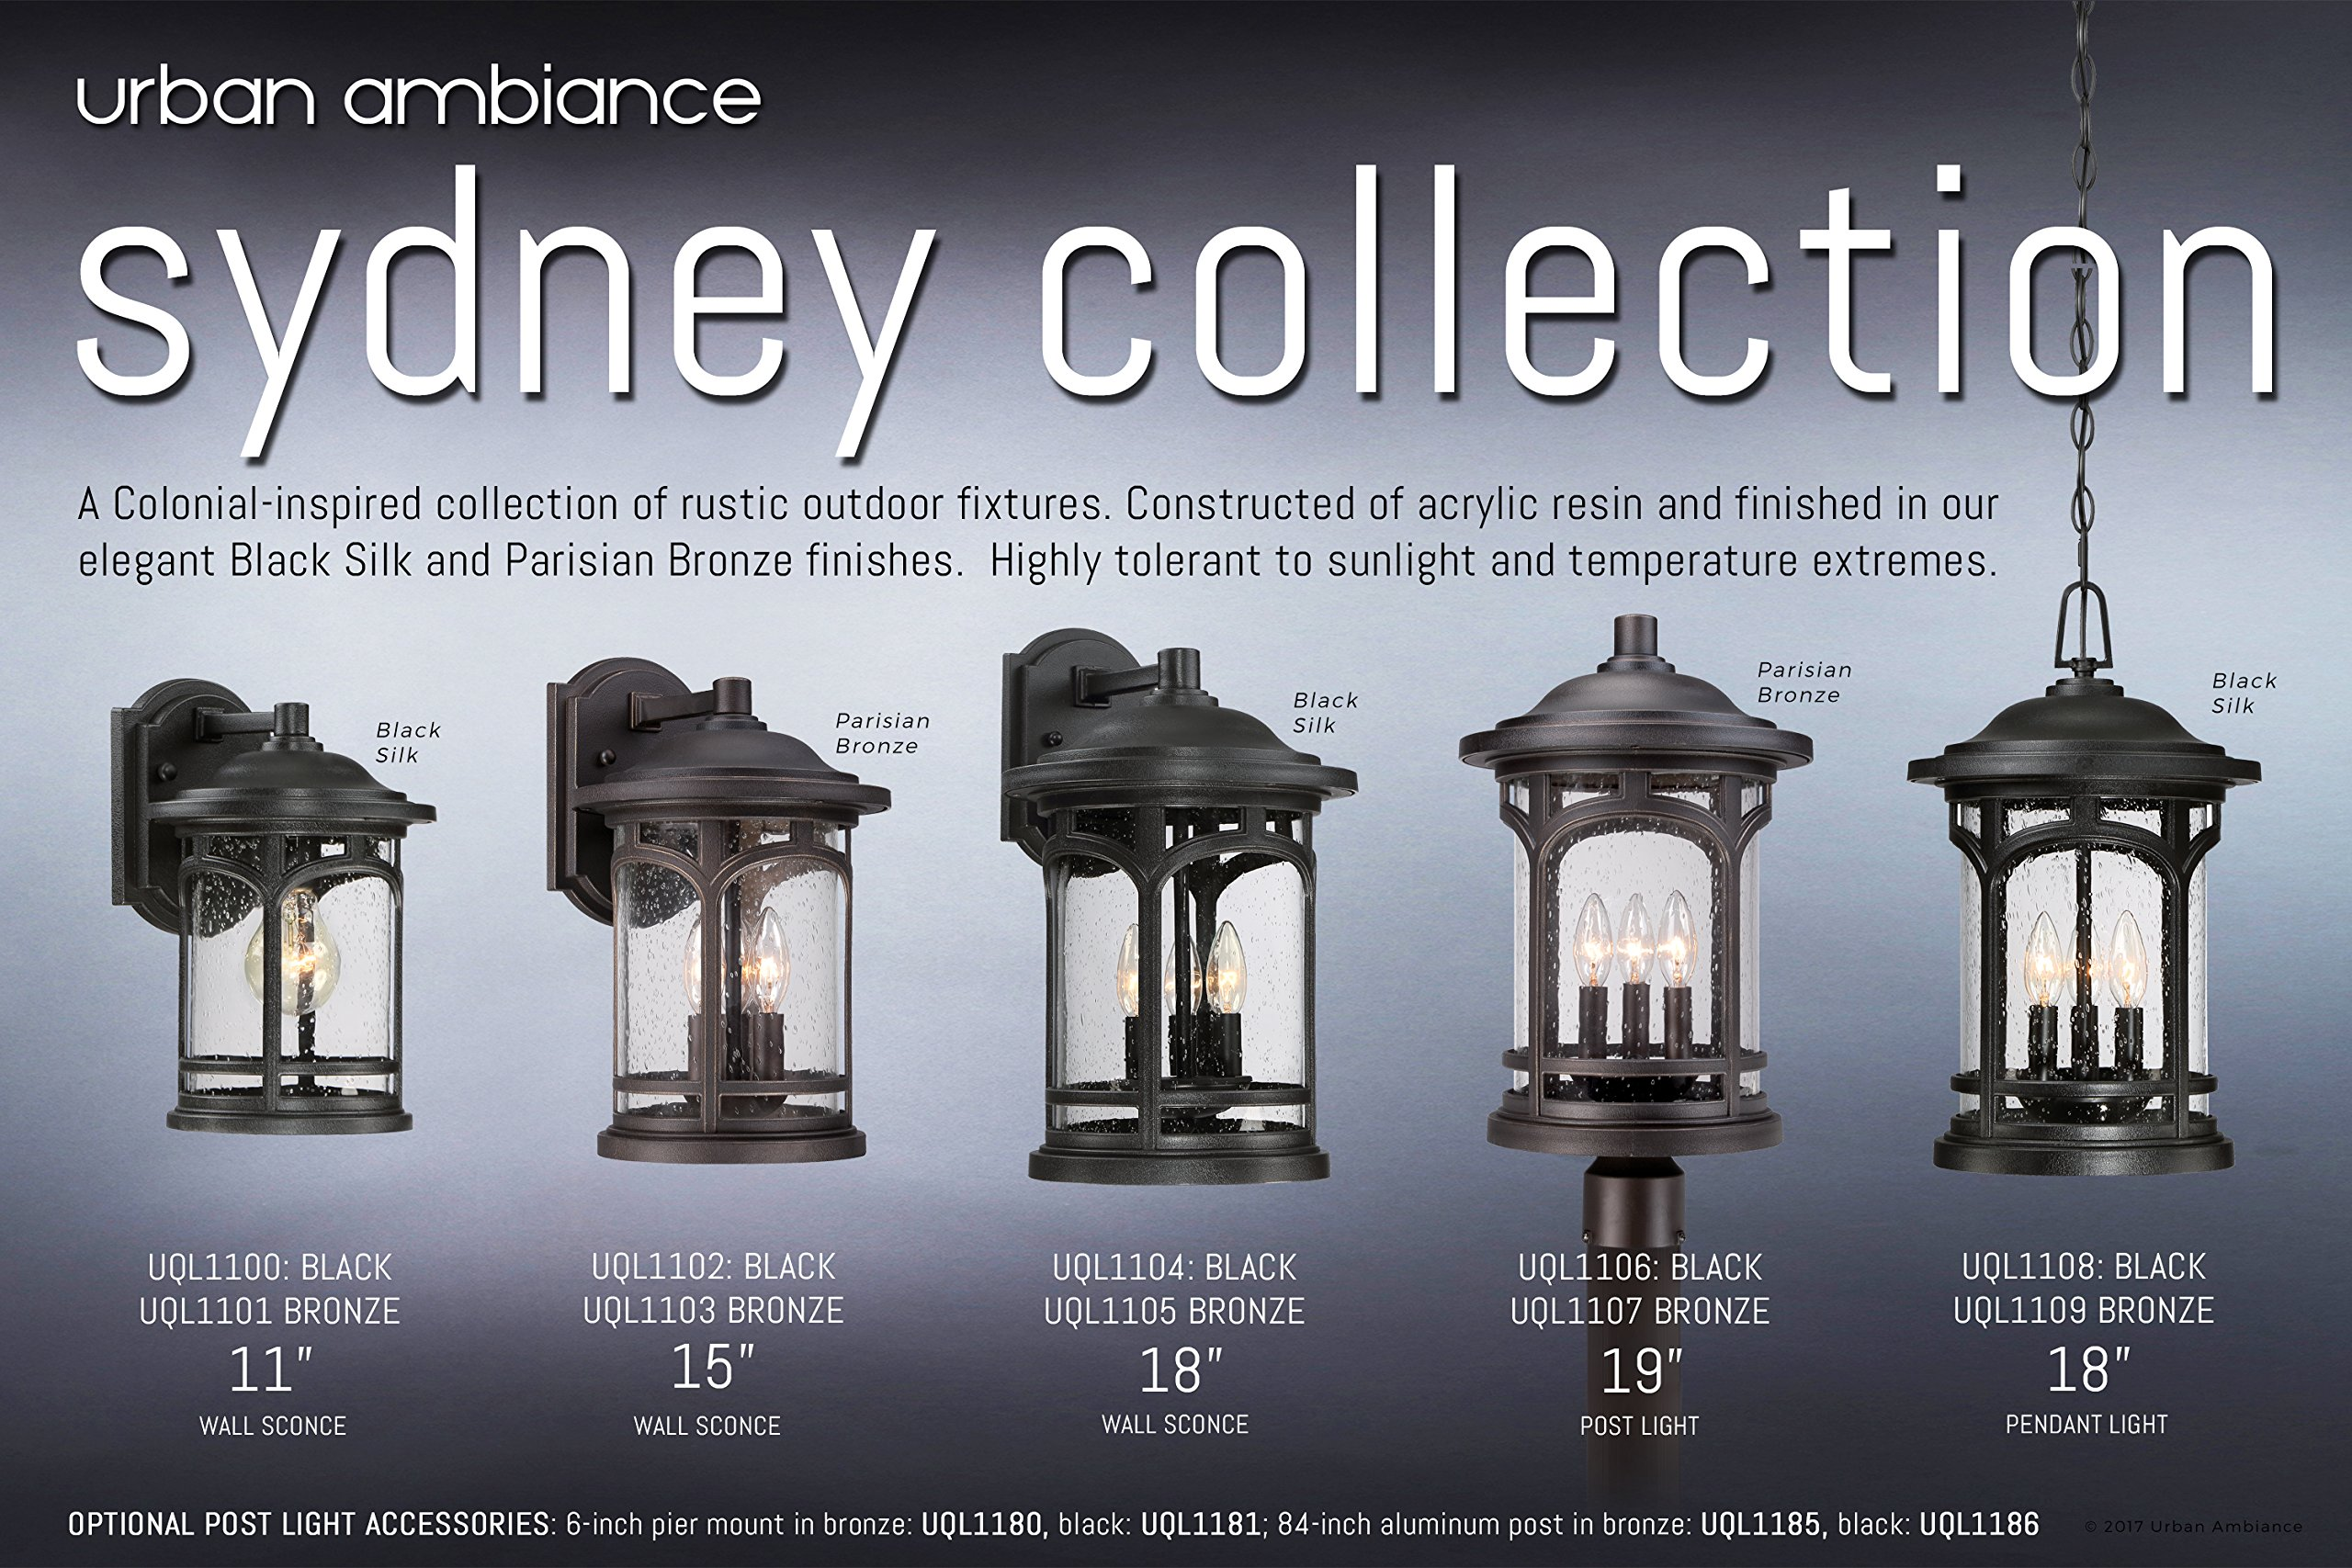 Luxury Rustic Outdoor Pendant Light, Large Size: 18''H x 11''W, with Colonial Style Elements, Wrought Iron Design, Oil Rubbed Parisian Bronze Finish and Seeded Glass, UQL1109 by Urban Ambiance by Urban Ambiance (Image #6)